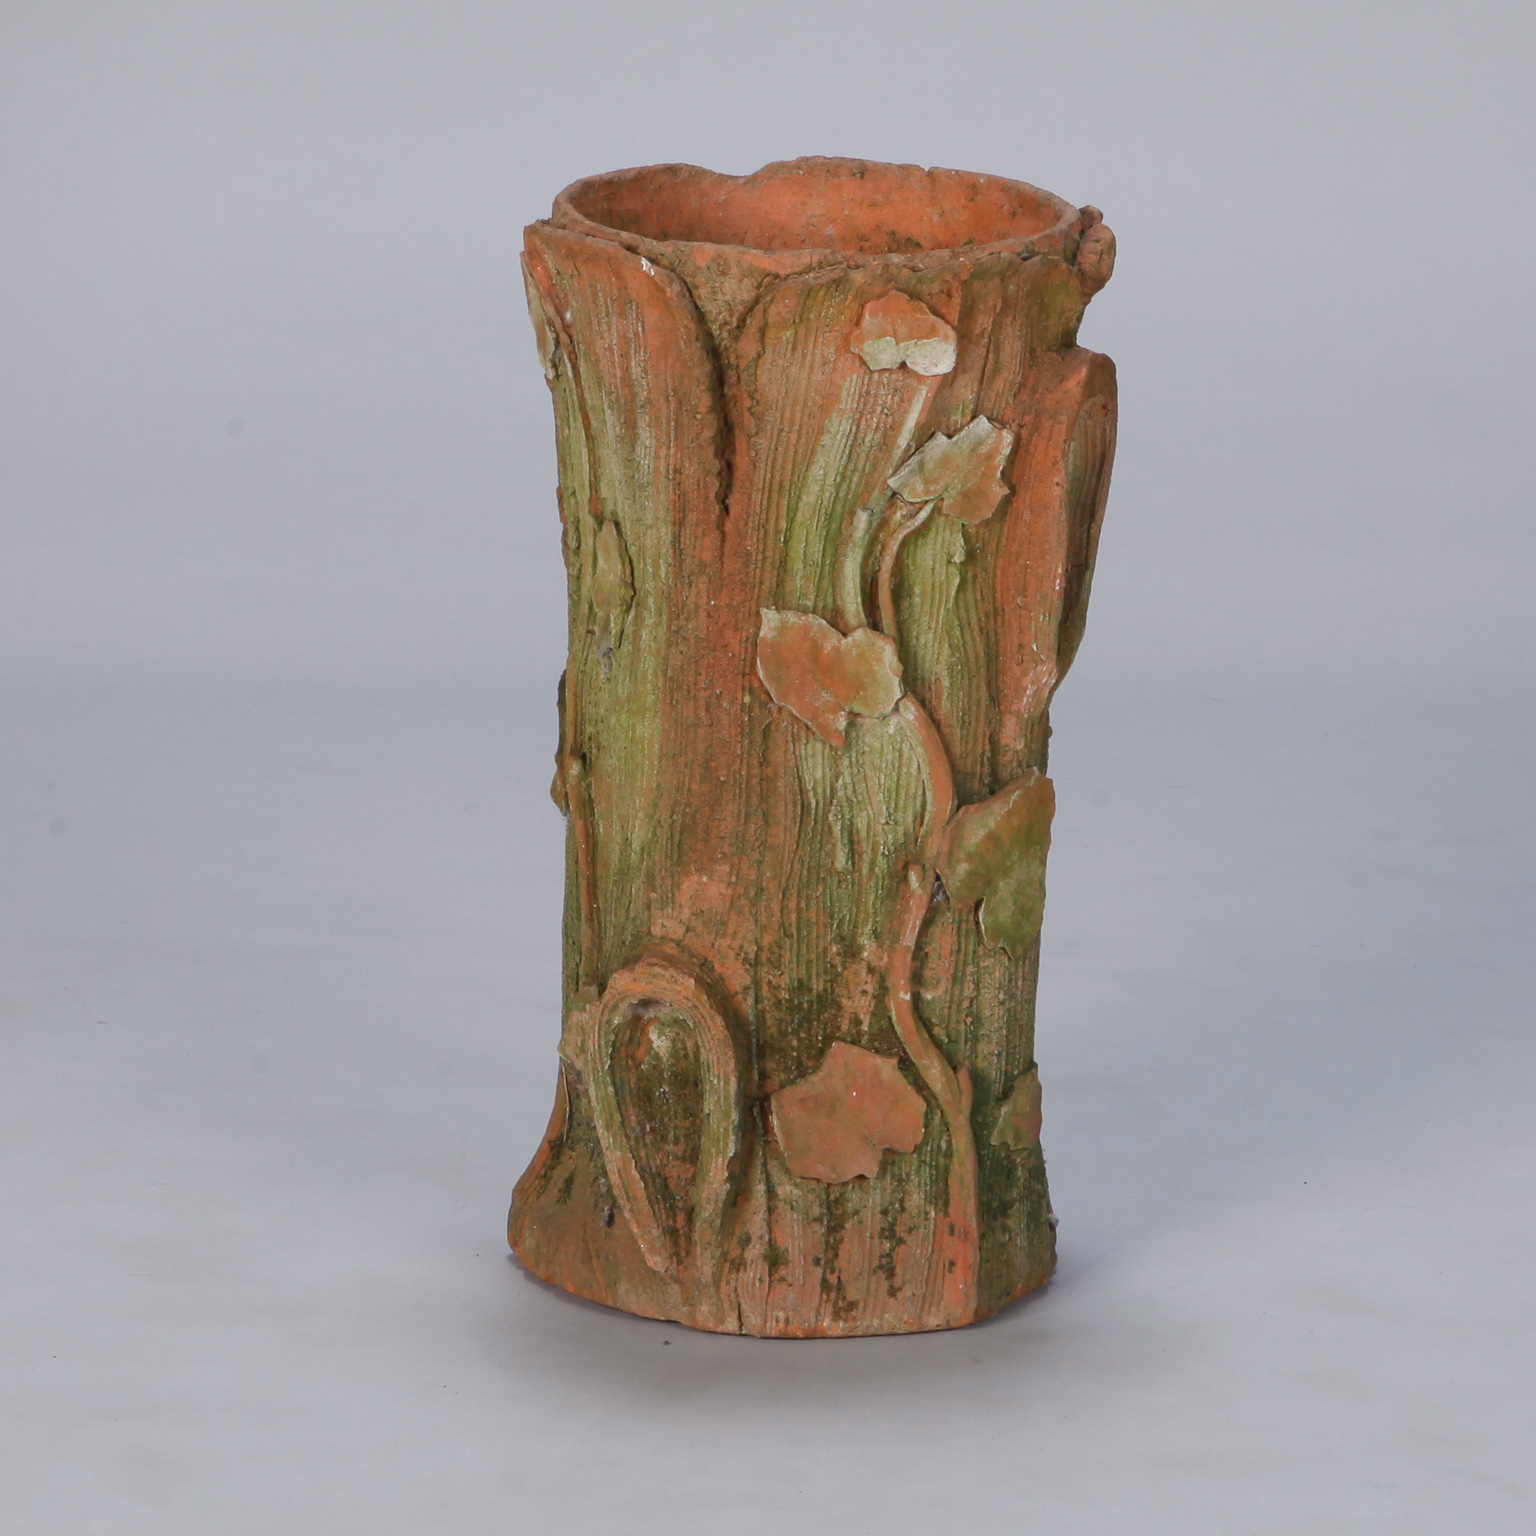 Art nouveau terra cotta tree stump umbrella stand item7490 images reviewsmspy